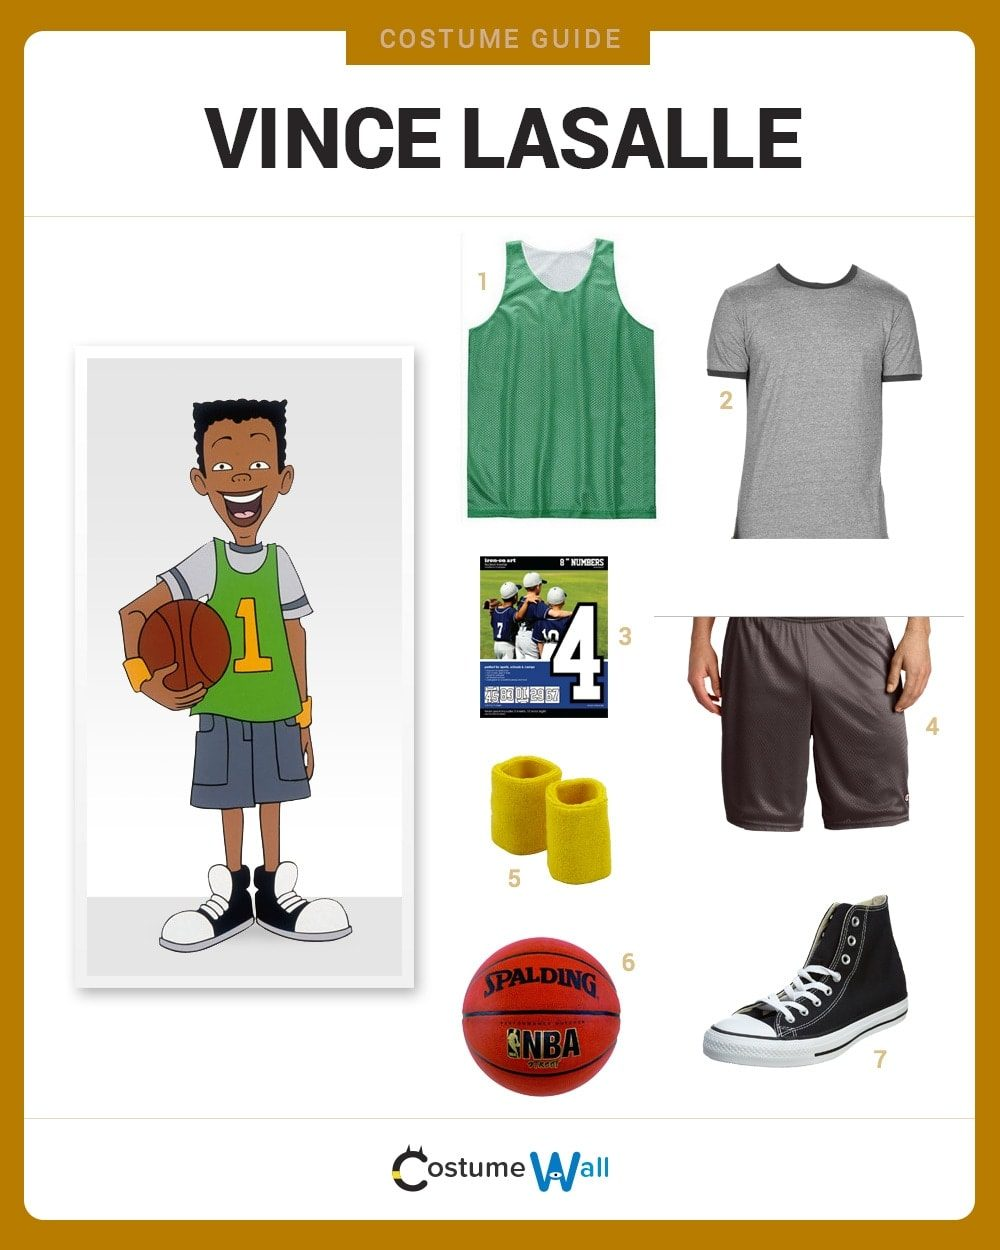 Vince LaSalle Costume Guide